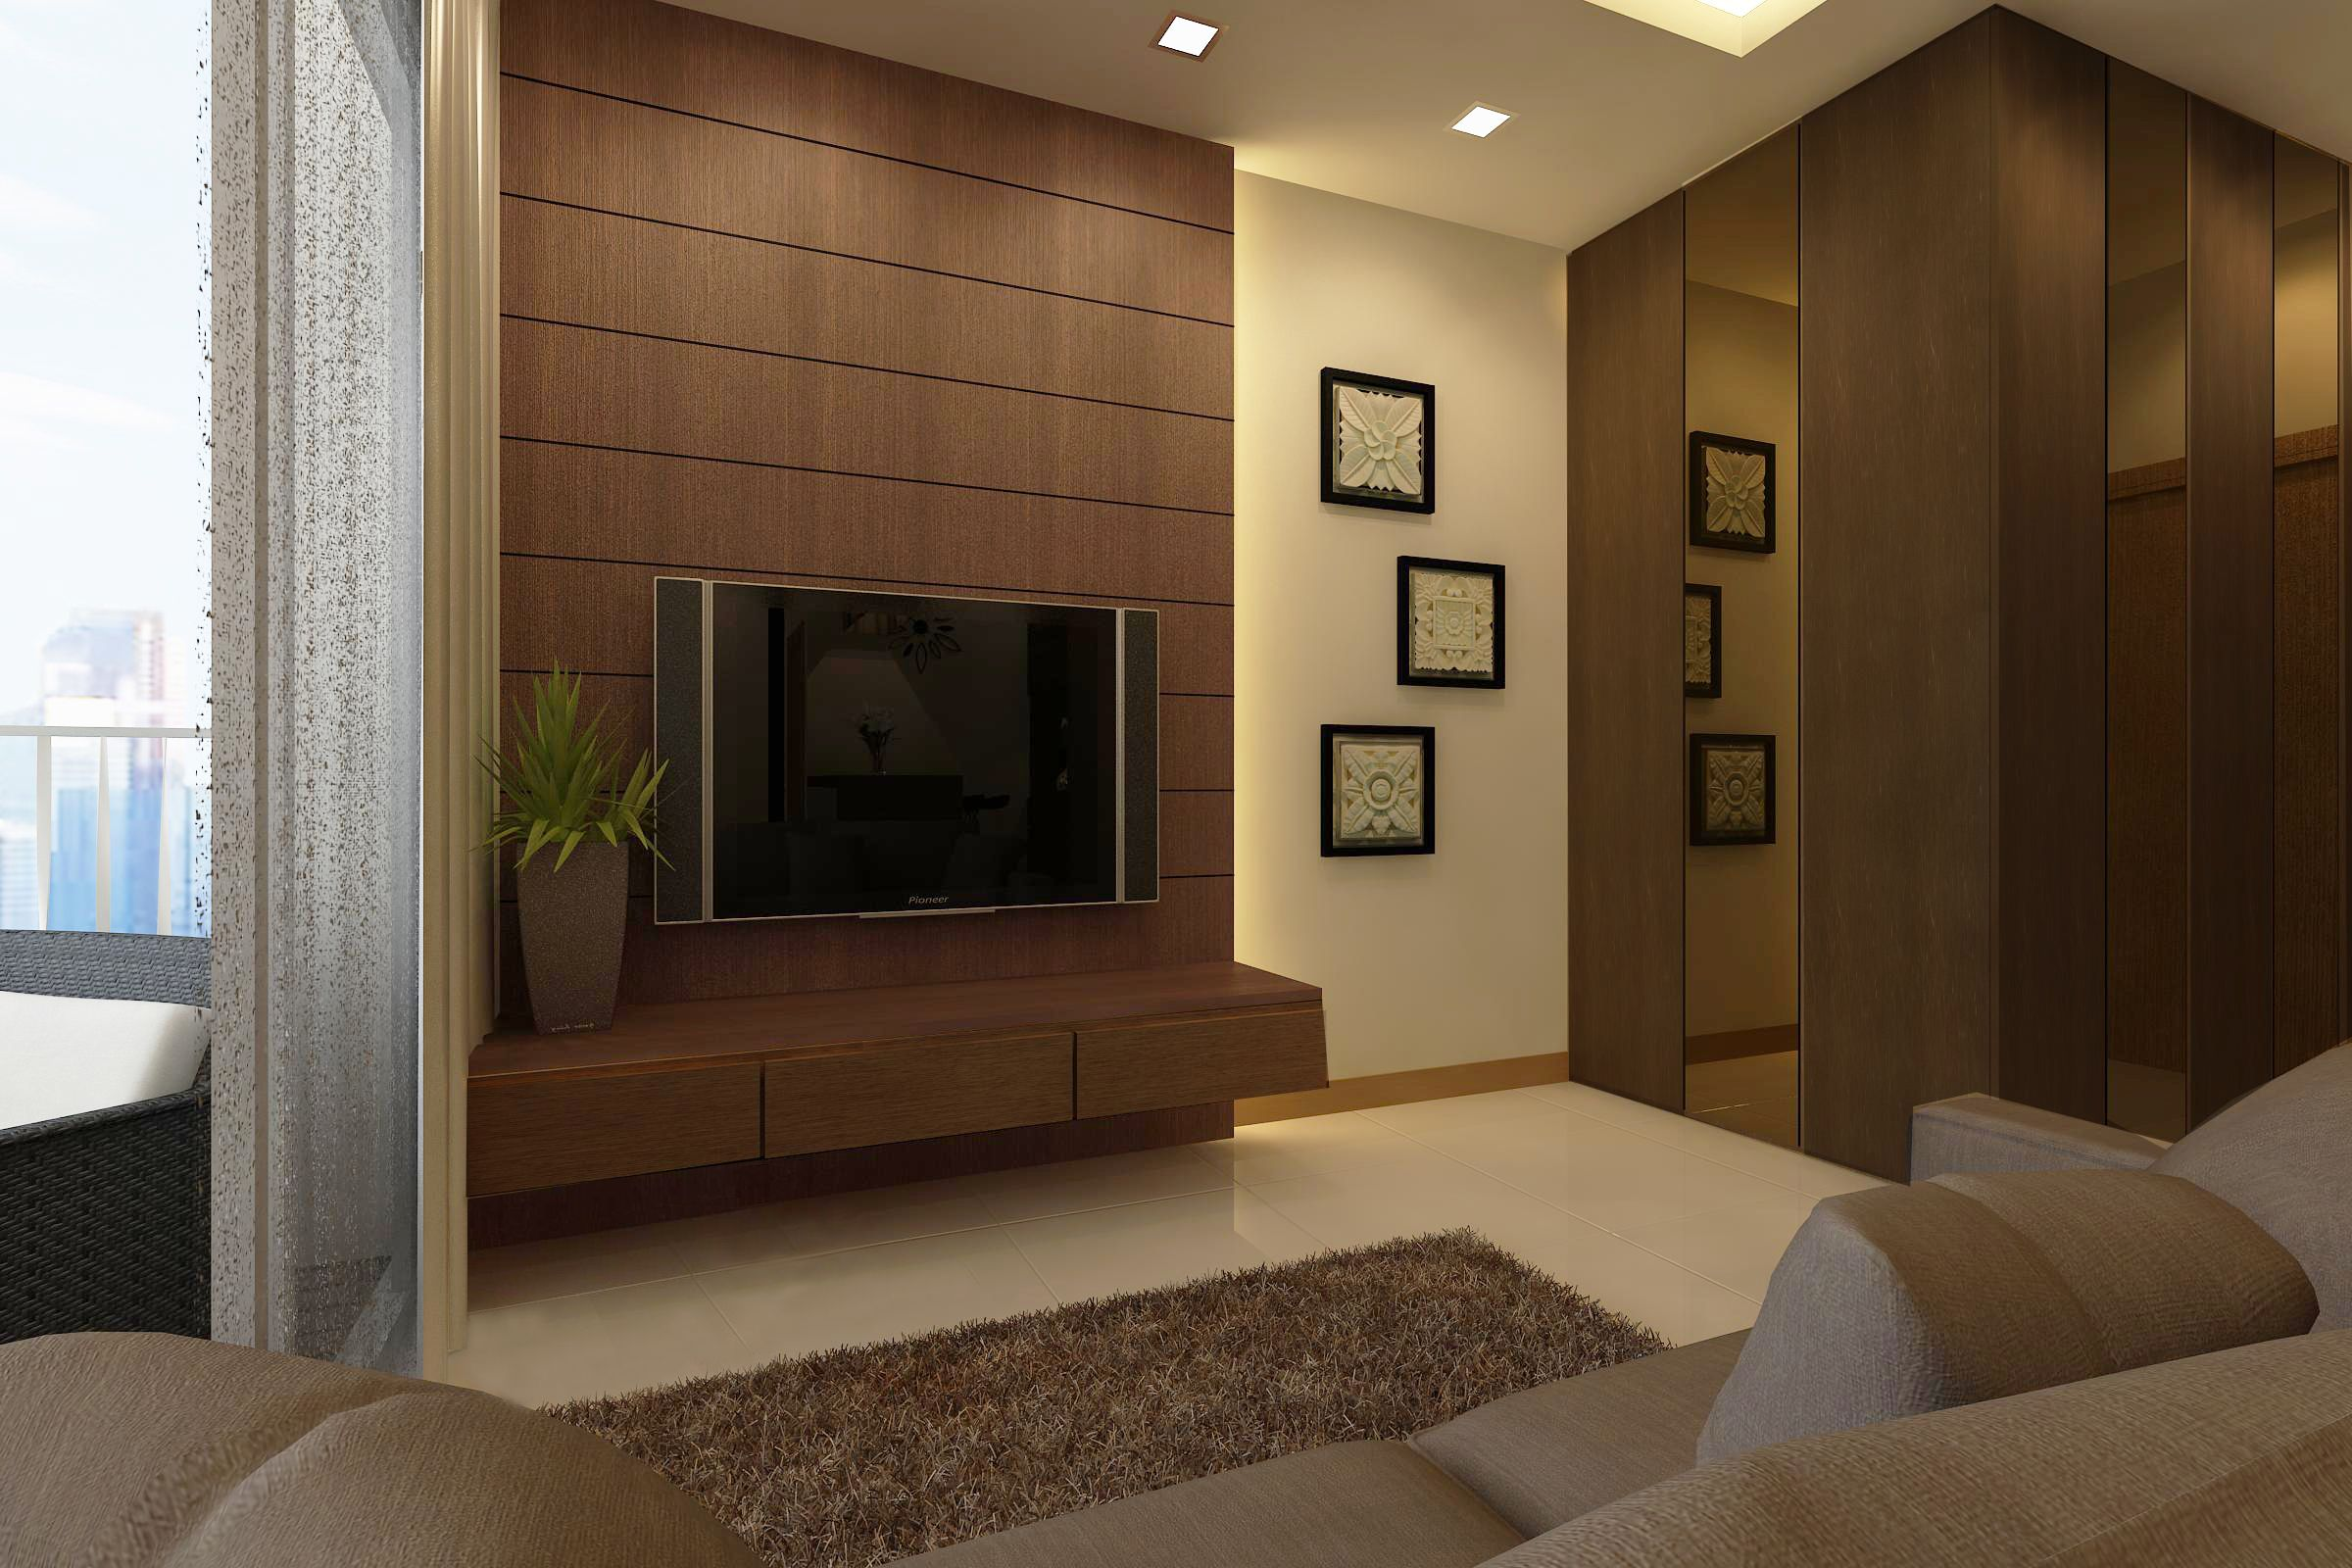 Resort Interior Design A Theme That Is Similar To Balinese Developed From